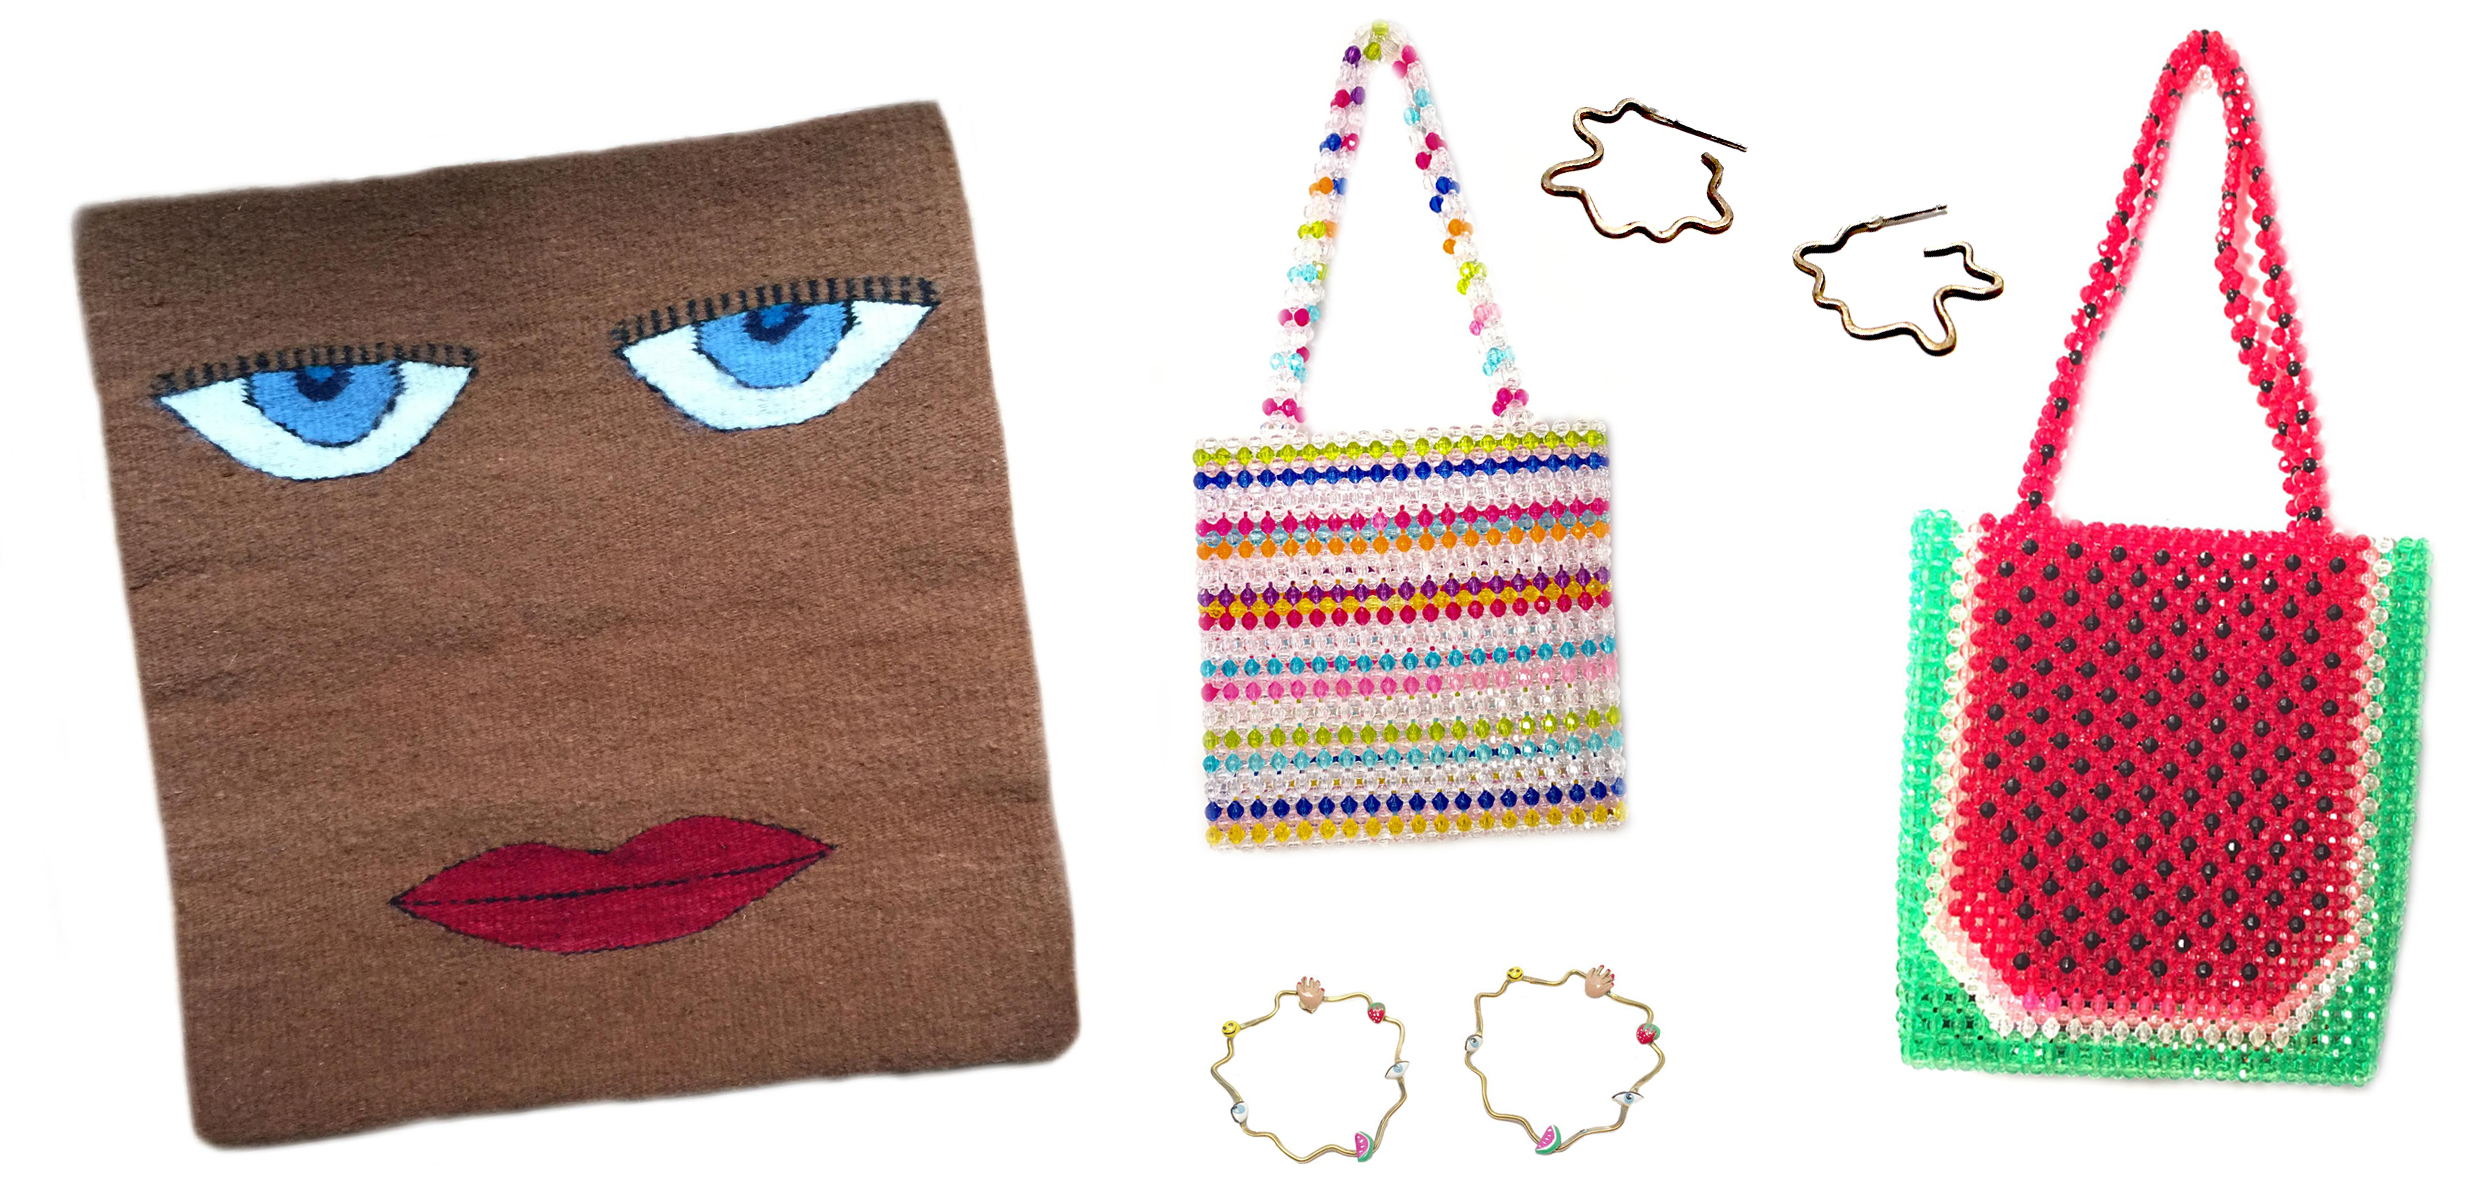 Pillow cover, purses, and earrings can all be purchased on susanalexandra.com